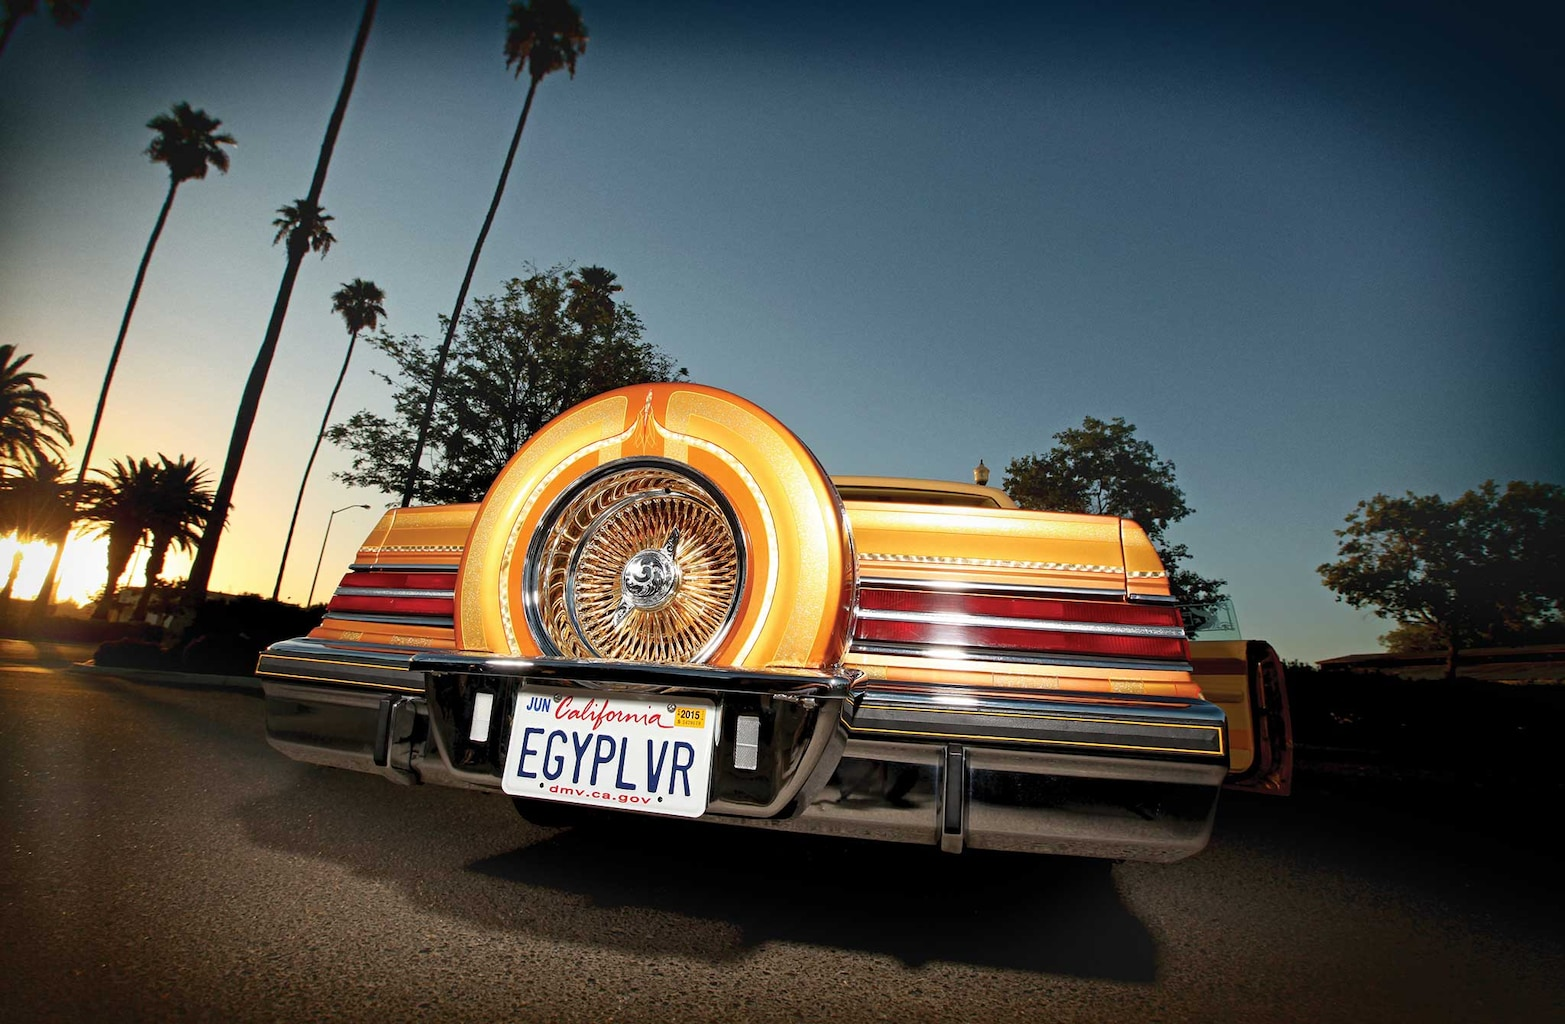 The Buick Regal still endures as a favorite style to the younger generation of lowrider enthusiasts.